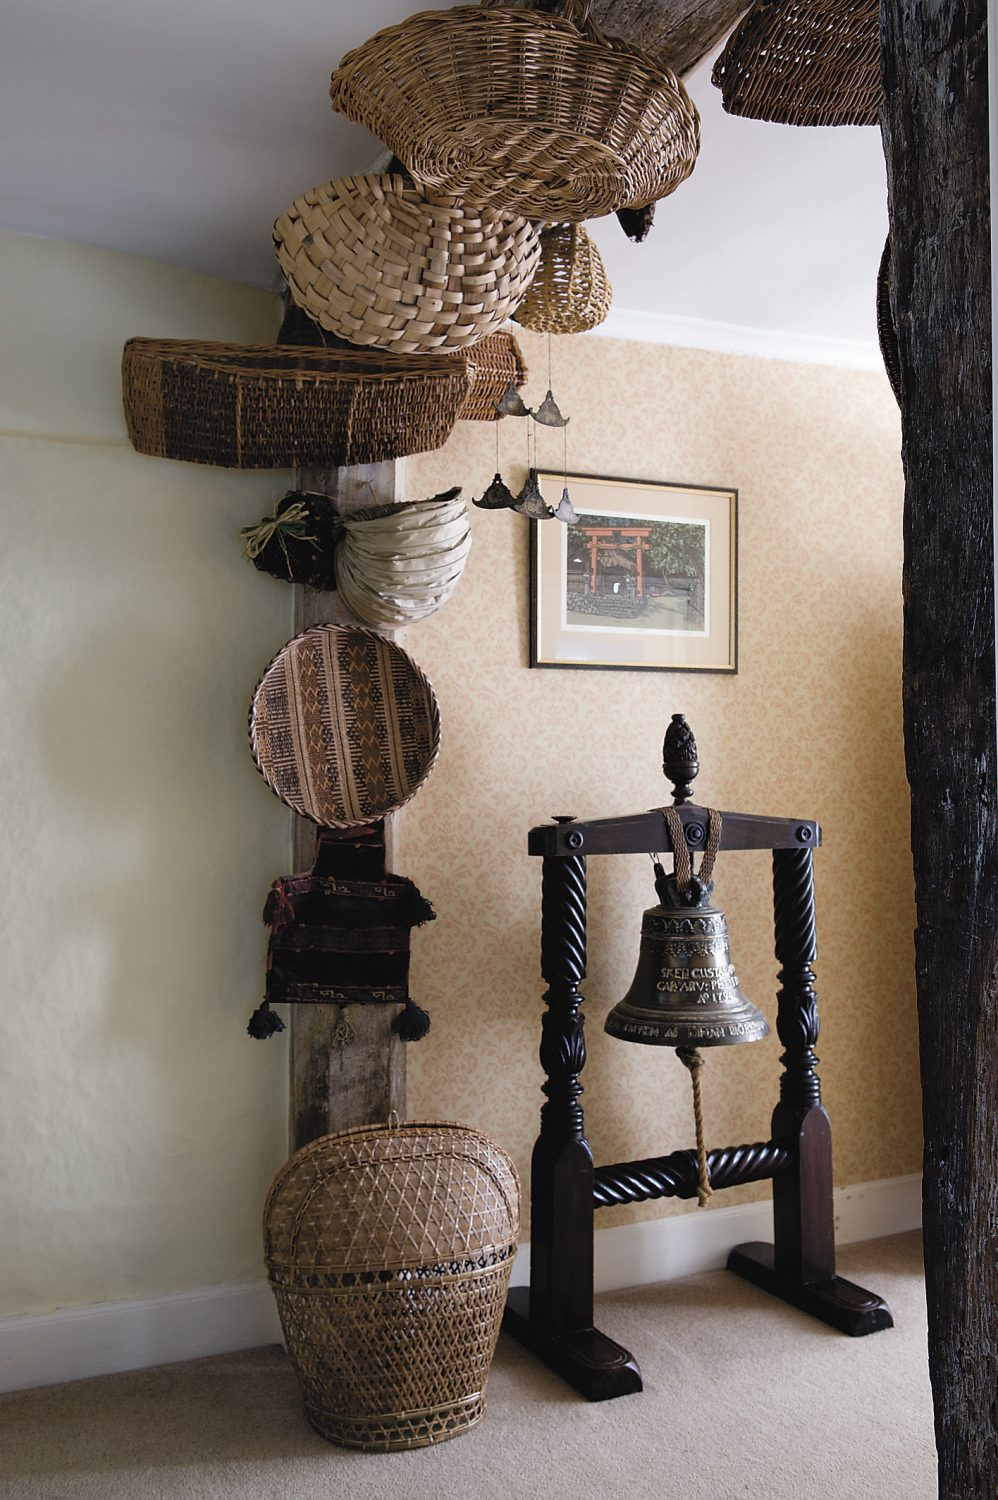 Jemima's collection of baskets from around the world